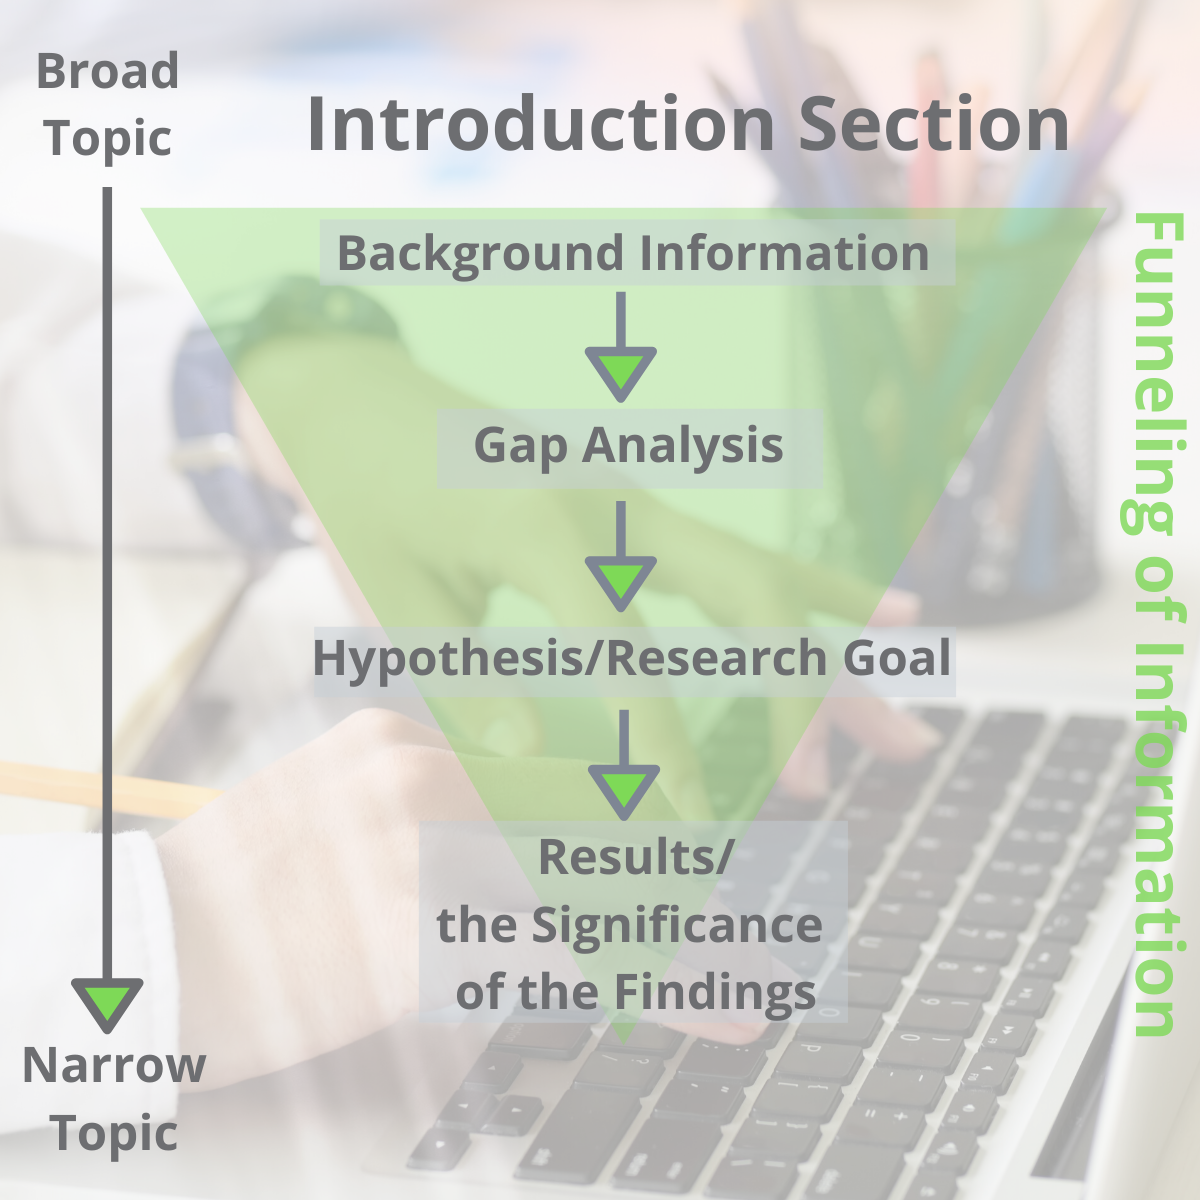 Common structures of Introduction Section of a Scientific Article